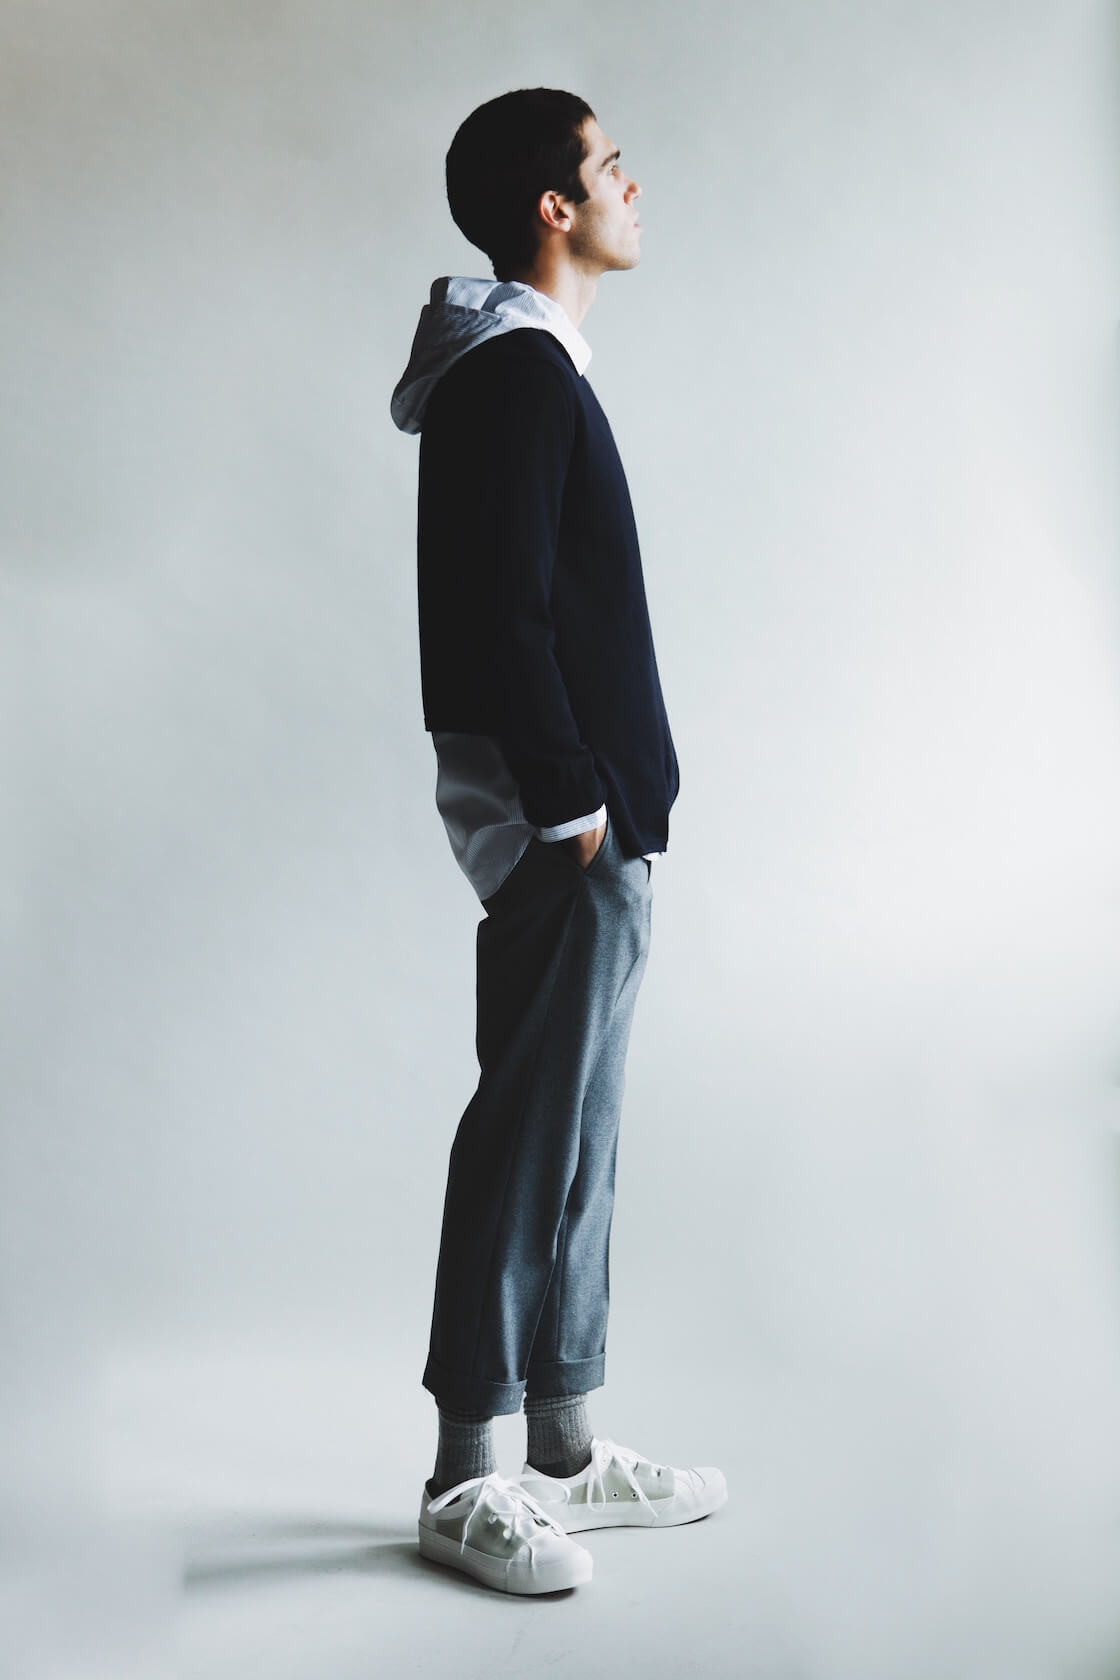 Comme des garcons shirt fully fashioned knit gauge 10 wool sweater and yarn dyed cotton poplin hood shirt, beams plus ivy flannel trousers and needles asymmetric ghillie sneakers on body